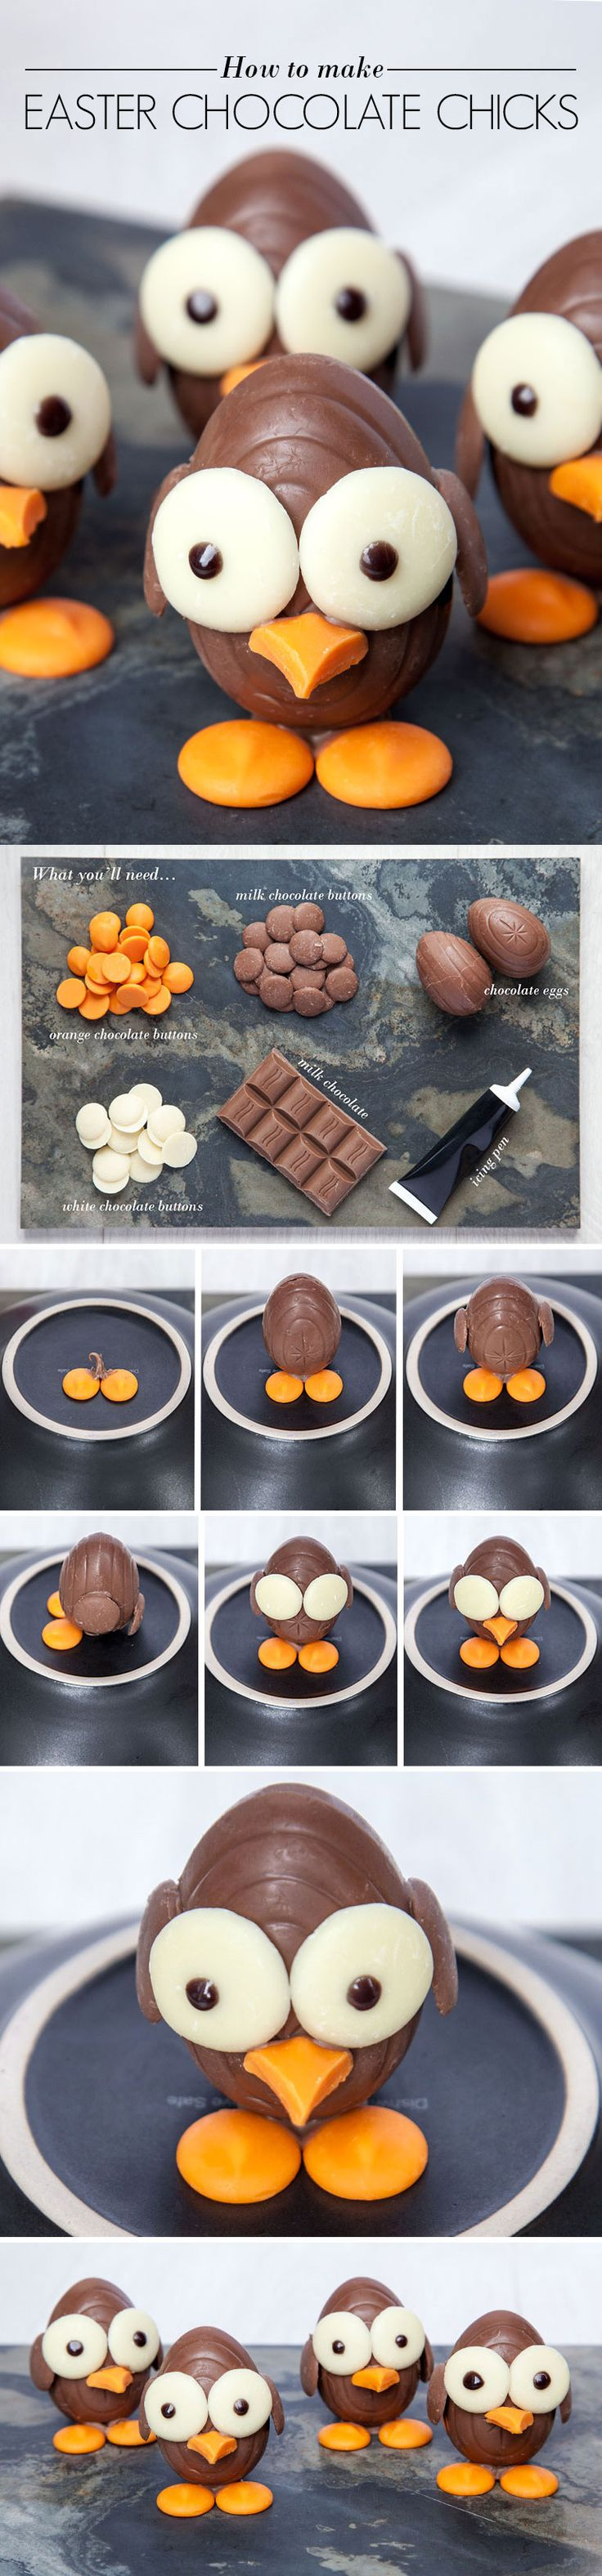 Step by Step Guide to making chocolate chicks!! (from the creator Emily Leary of amummytoo.co.uk)